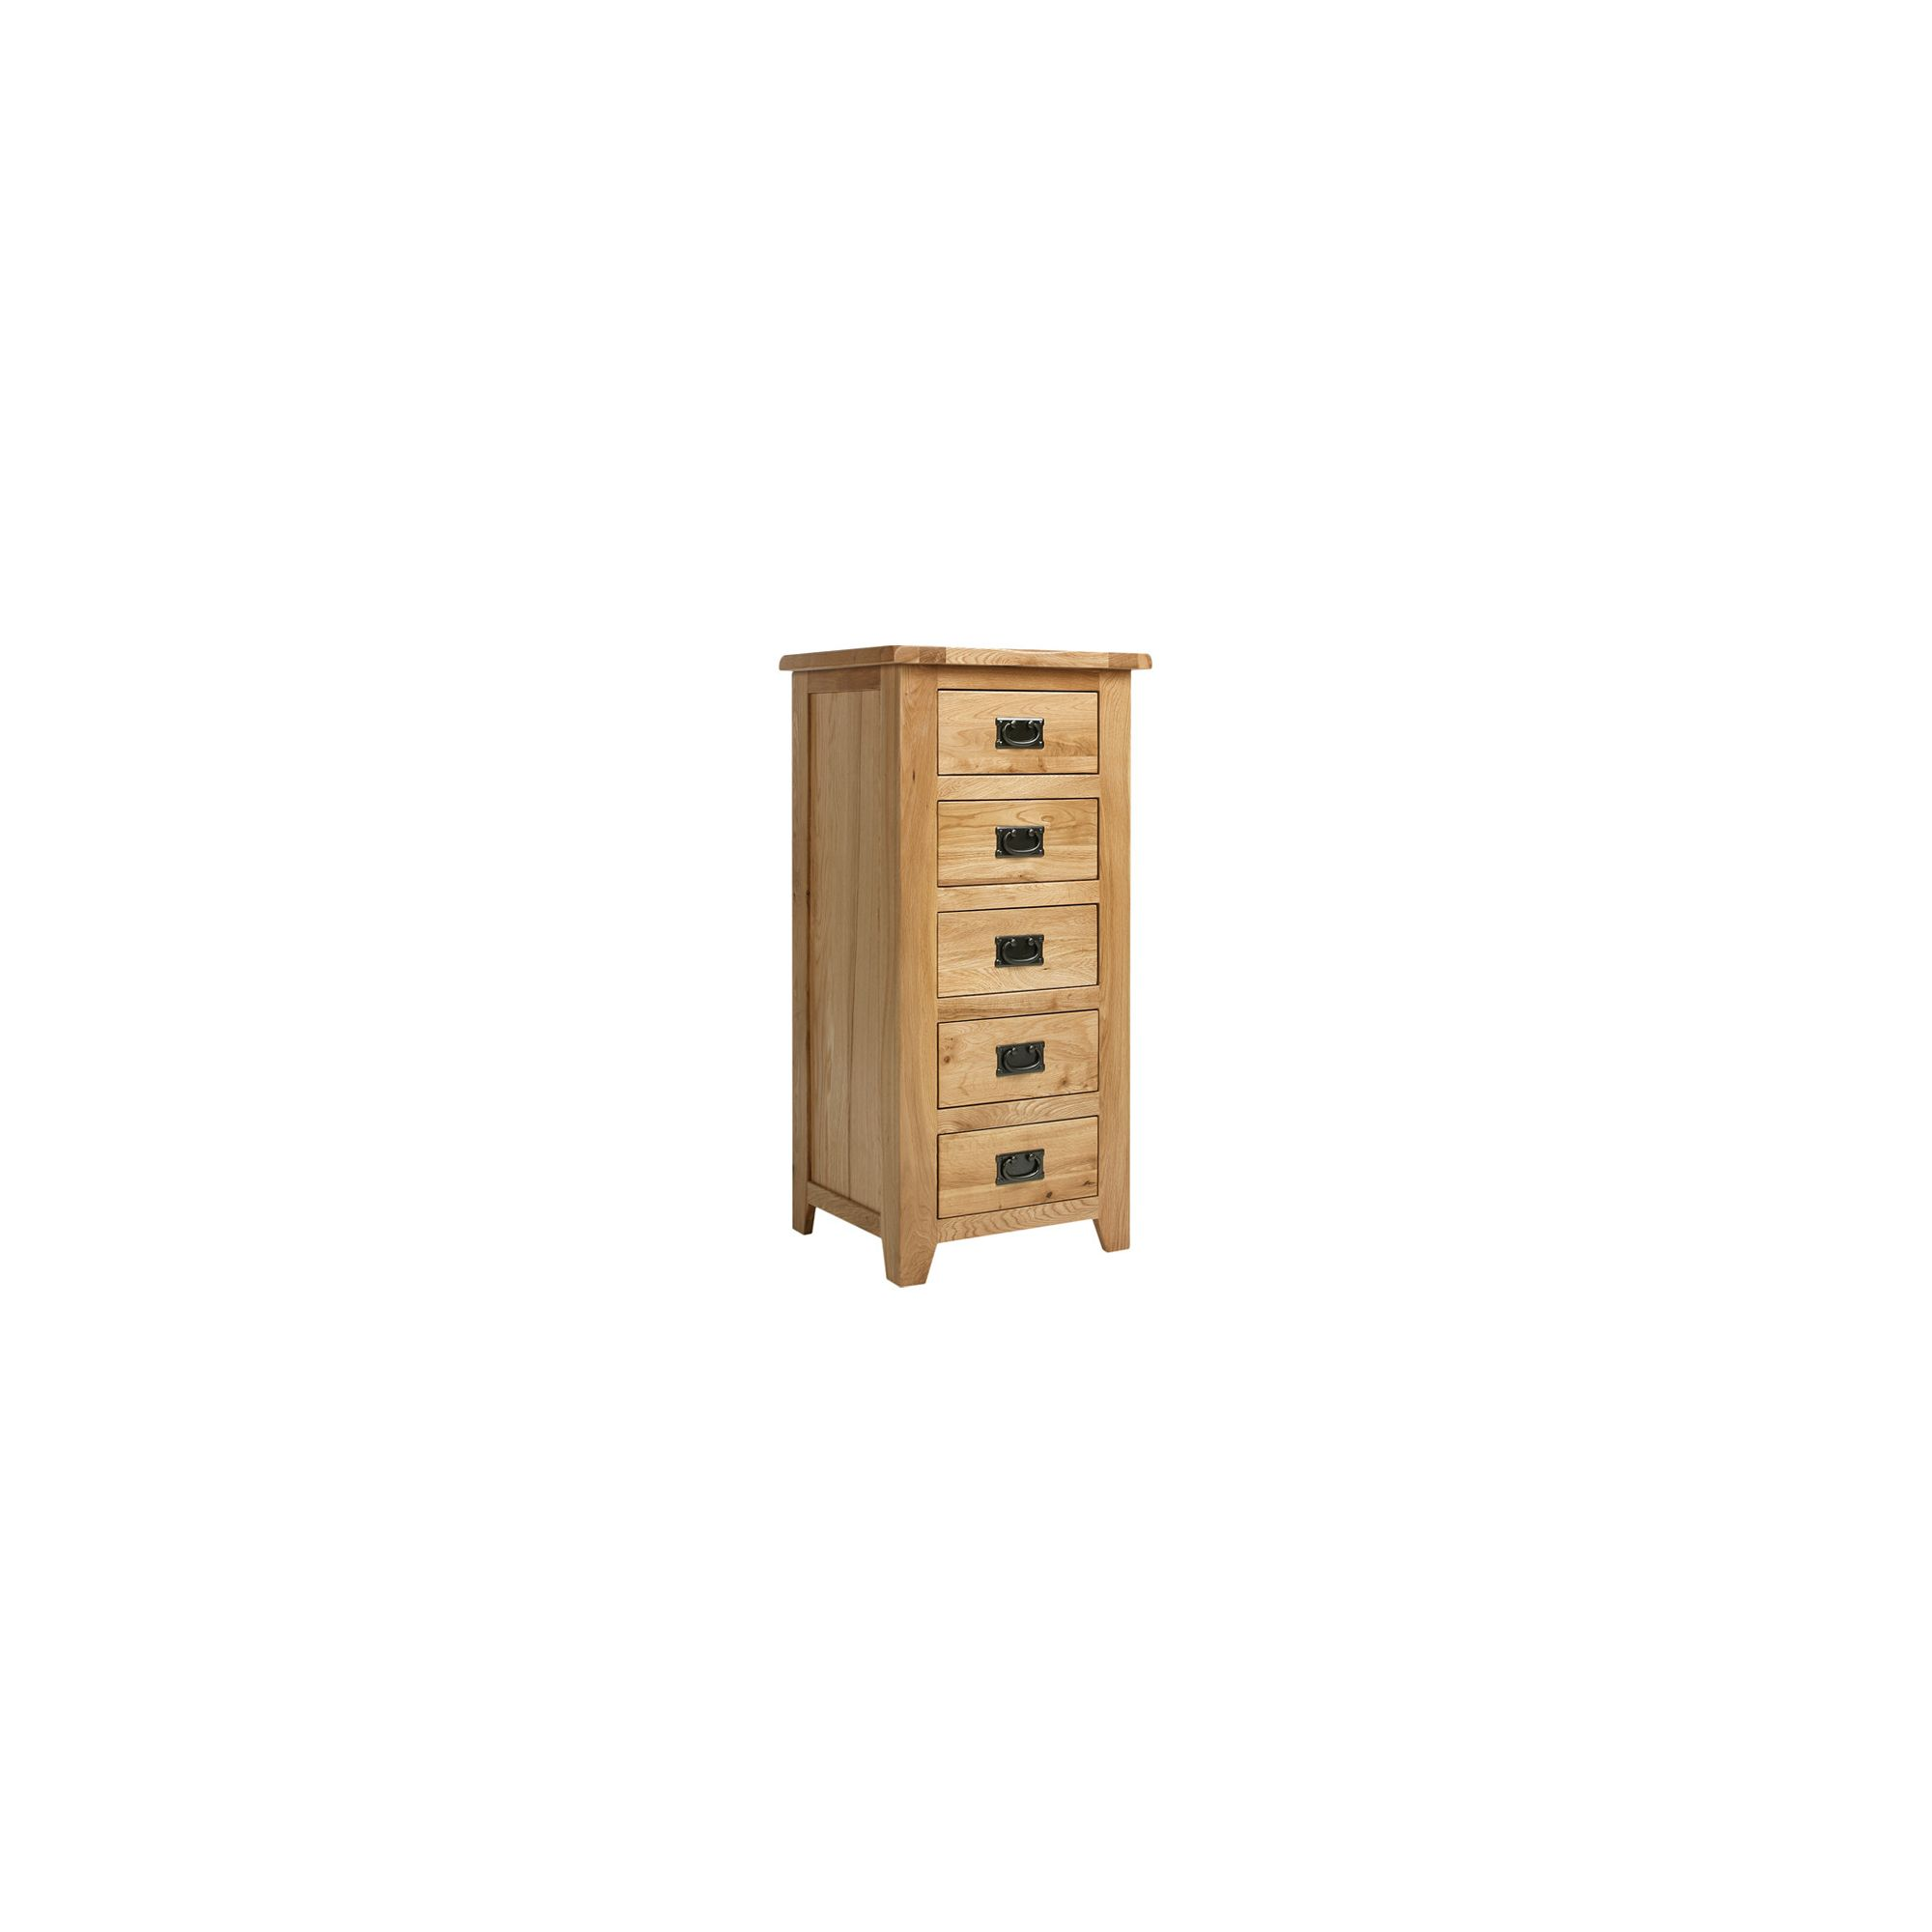 Ametis Westbury Reclaimed Oak 5 Drawer Wellington Chest at Tescos Direct